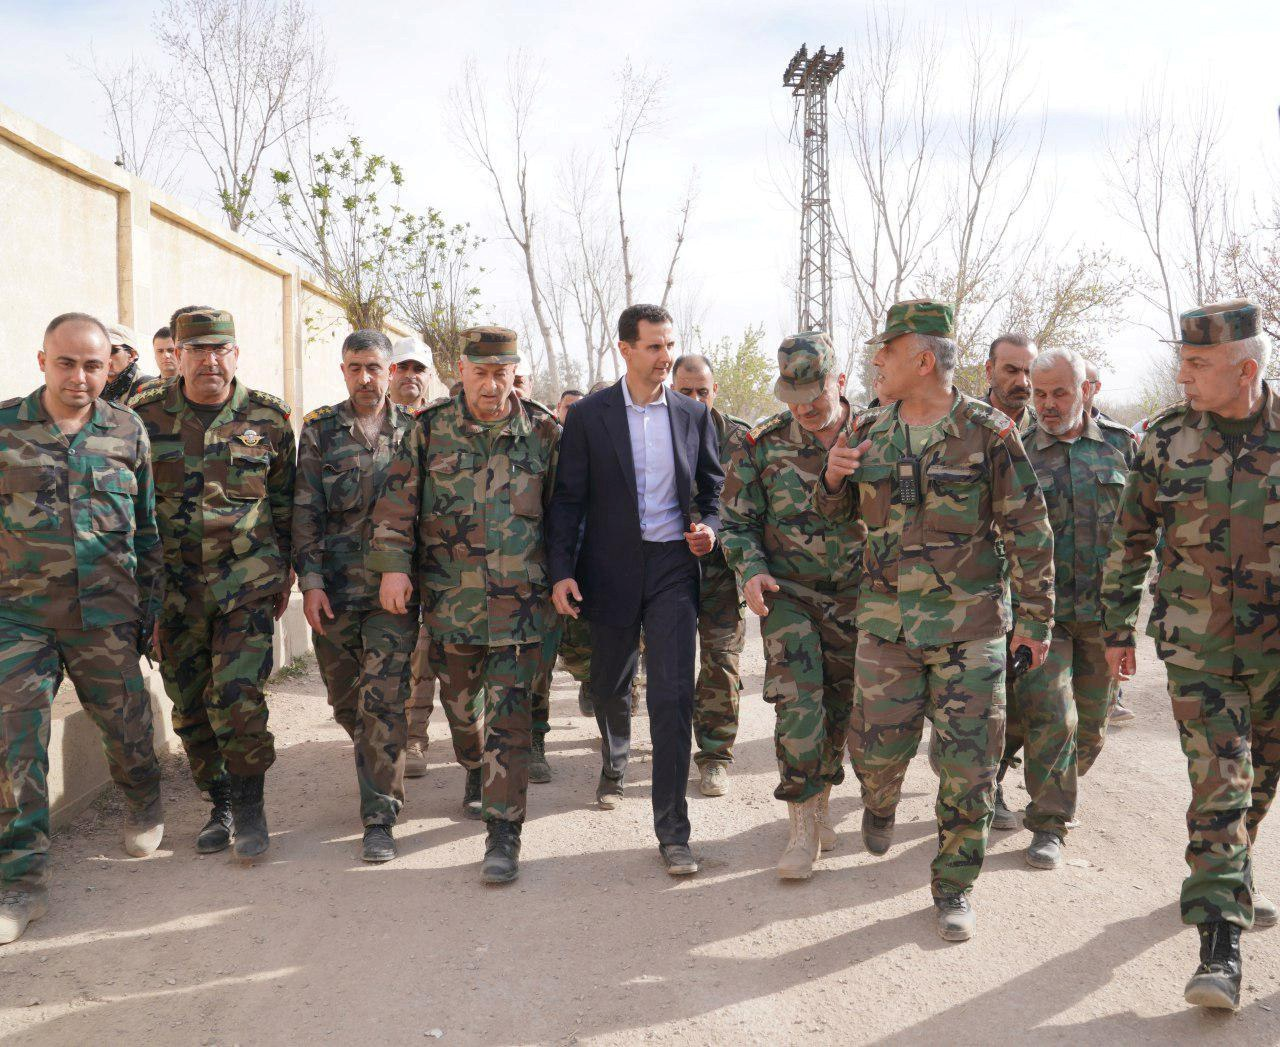 bashar al assad with troops sana photo via reuters